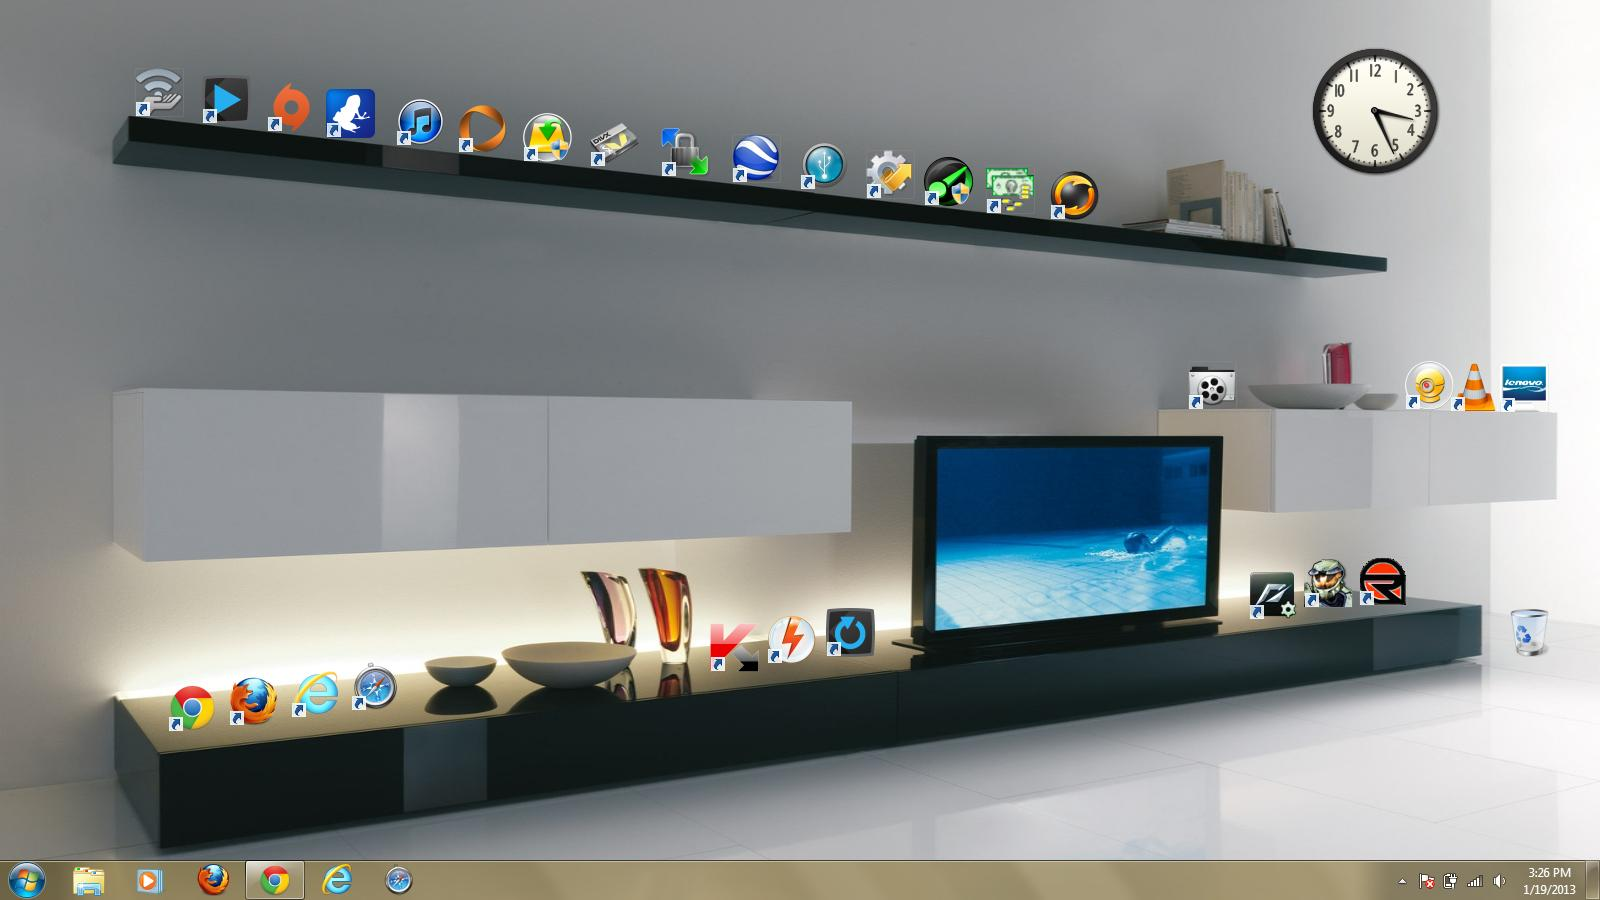 Creative Desktop Backgrounds Shelves The original wallpaper 1600x900